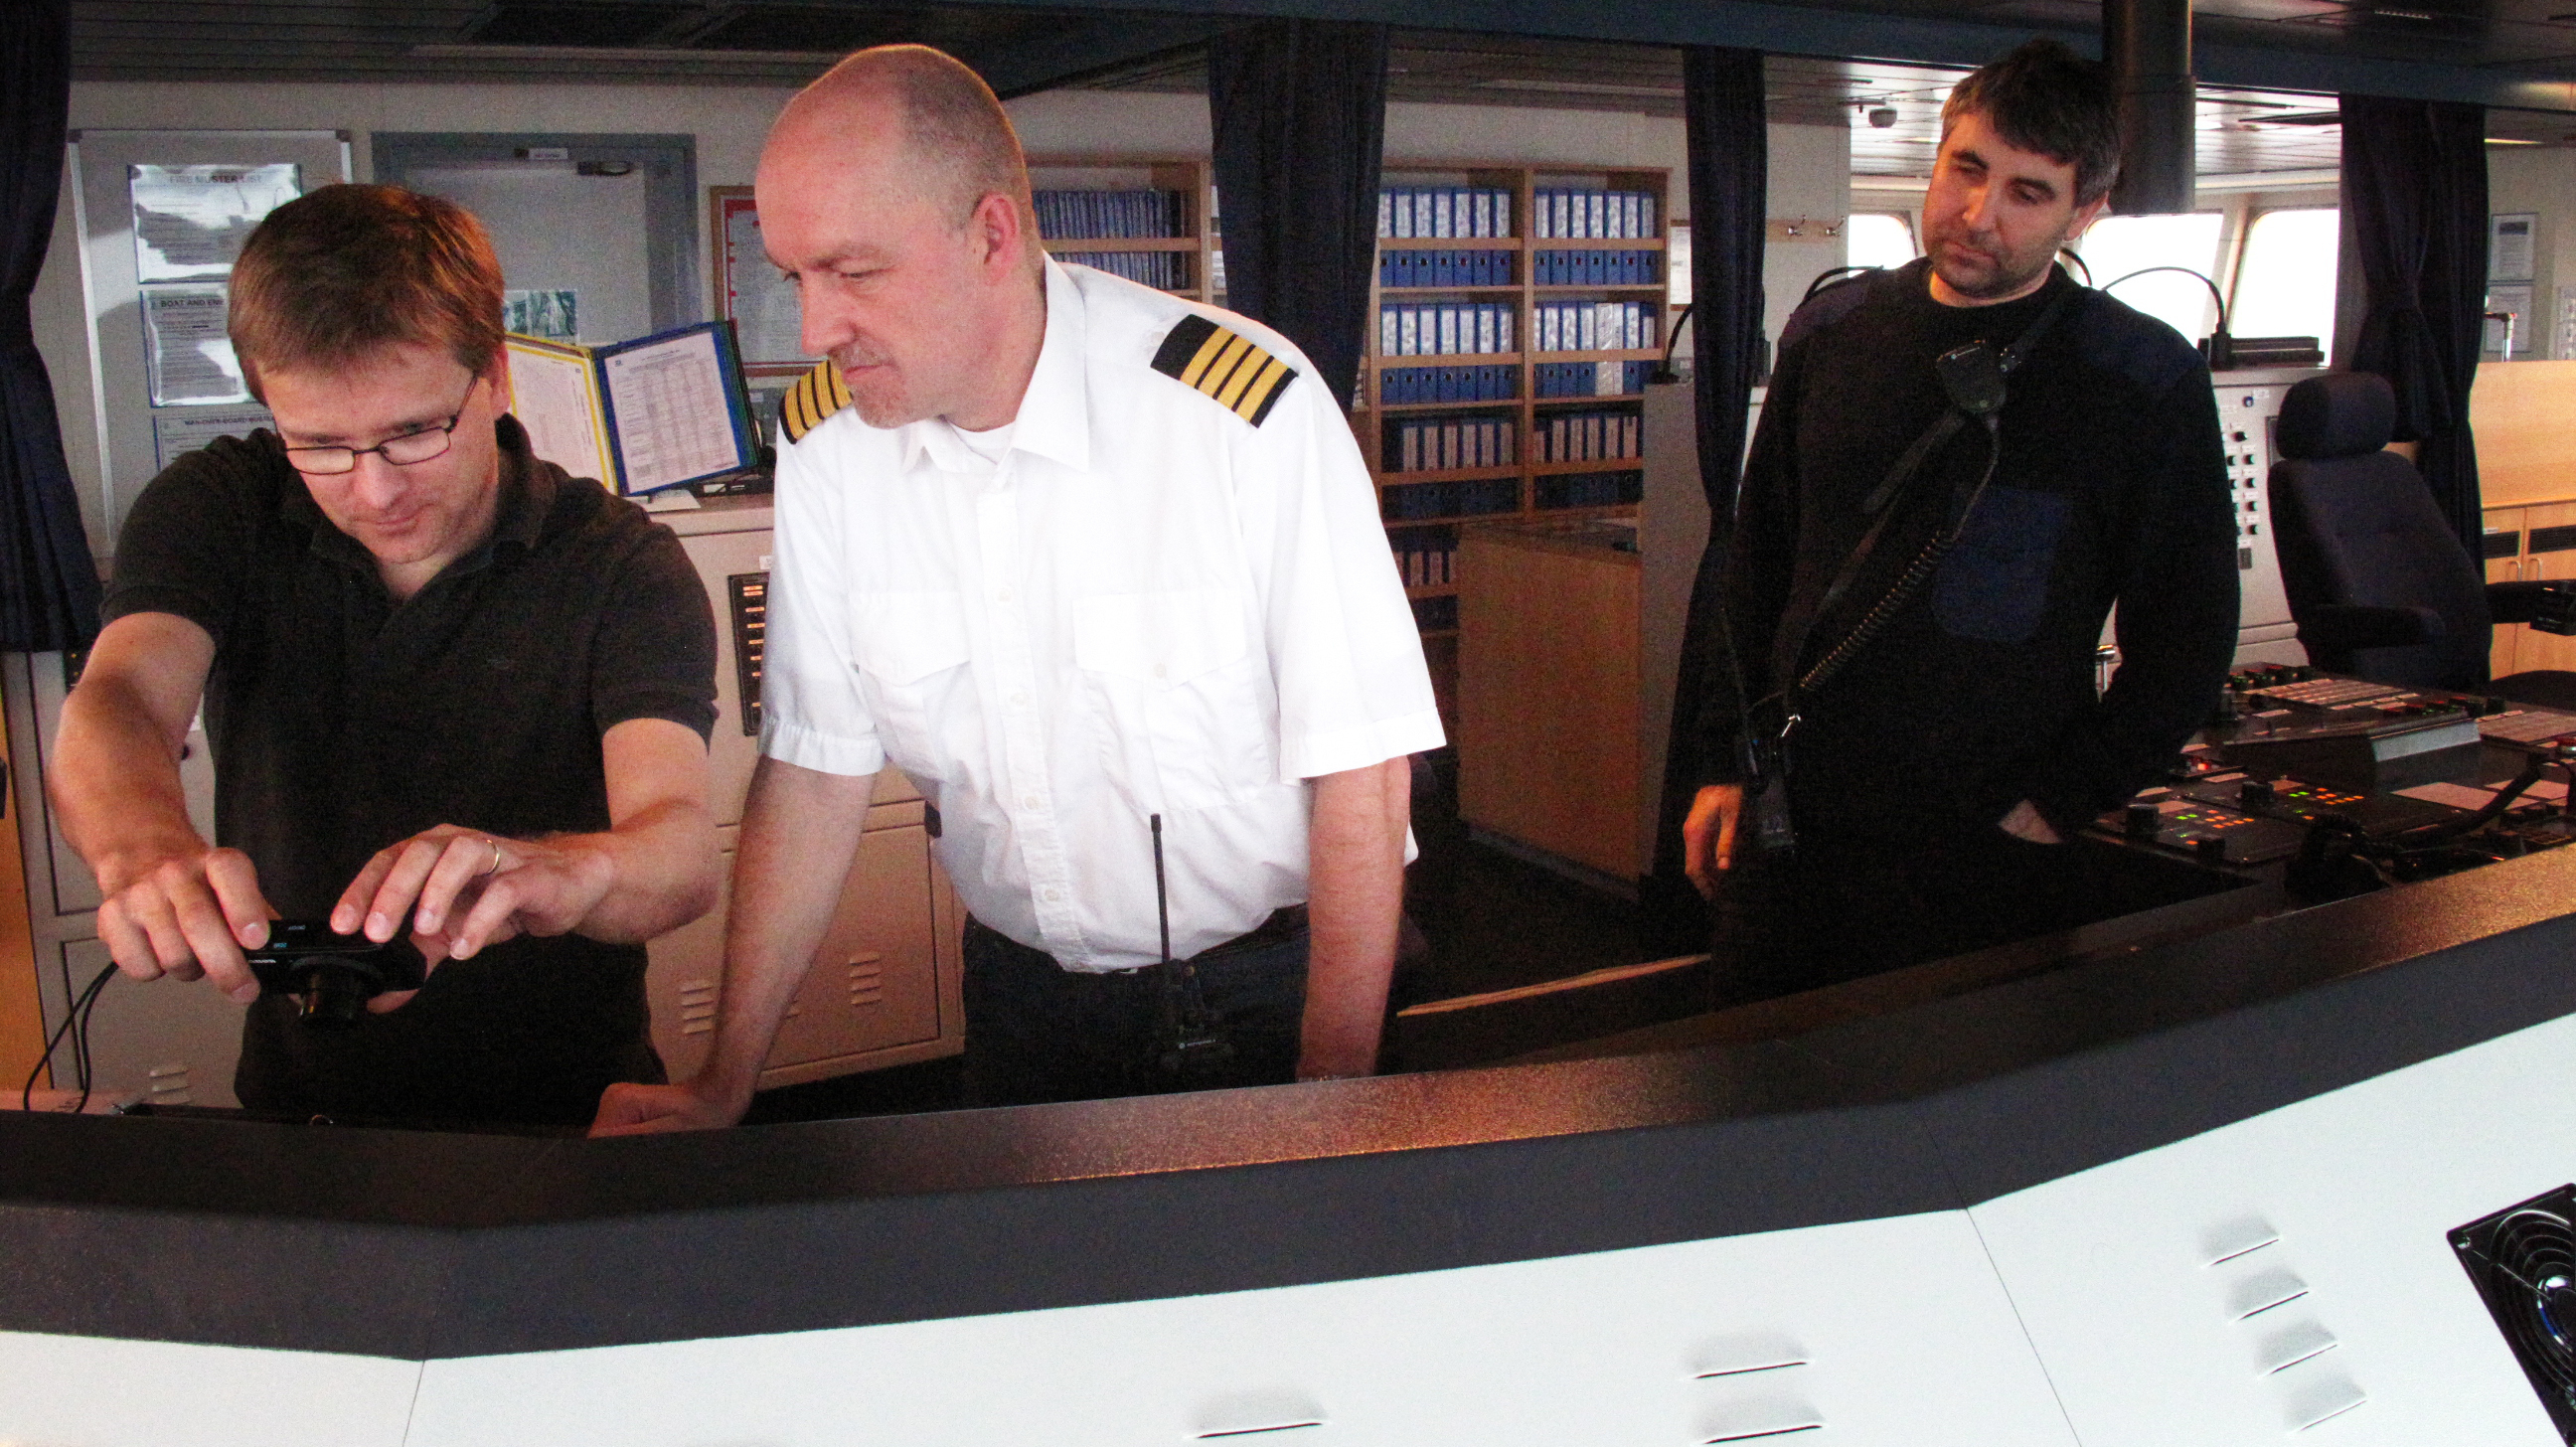 Captain Jes Meinertz (center) and Pawel Pidzikiewicz, (right) the ship's Polish pilot, take the ship out of port of Gdansk into the Baltic Sea.